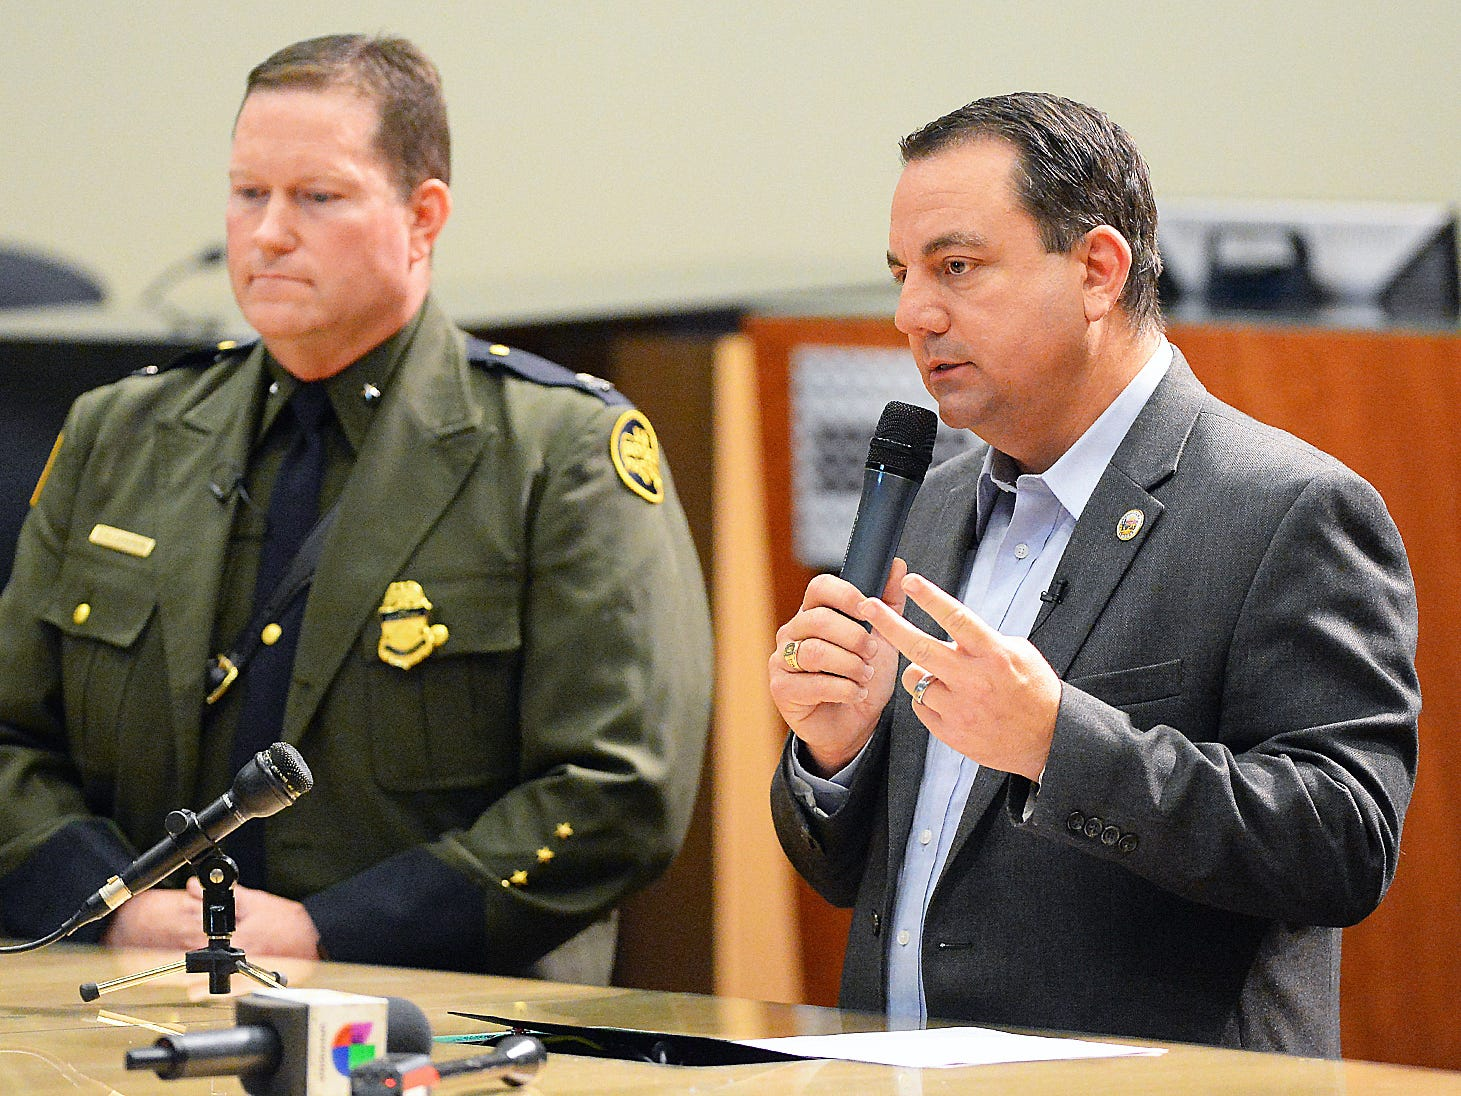 Yuma Mayor Doug Nicholls (right)  answers a question during his news conference inside Yuma City Council Chambers about the current humanitarian crisis in the border region, due to high volumes of illegal migrant crossings, on March 28, 2019, in Yuma. U.S. Border Patrol Deputy Chief Patrol Agent for the Yuma sector, Carl Landrum, is on the left.